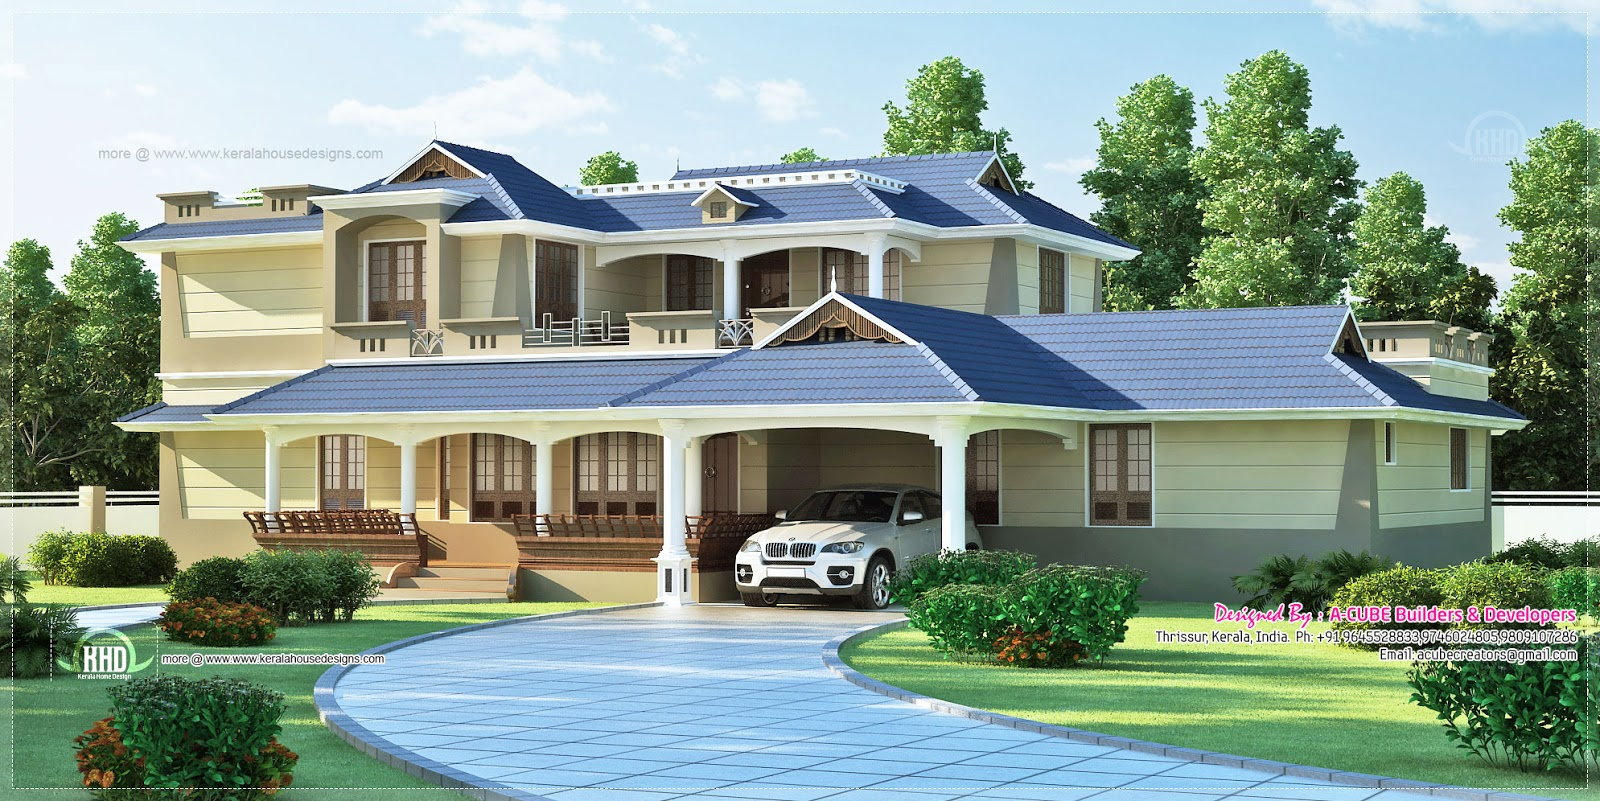 Luxury Sloping Roof 5 Bedroom Villa Exterior Kerala Home